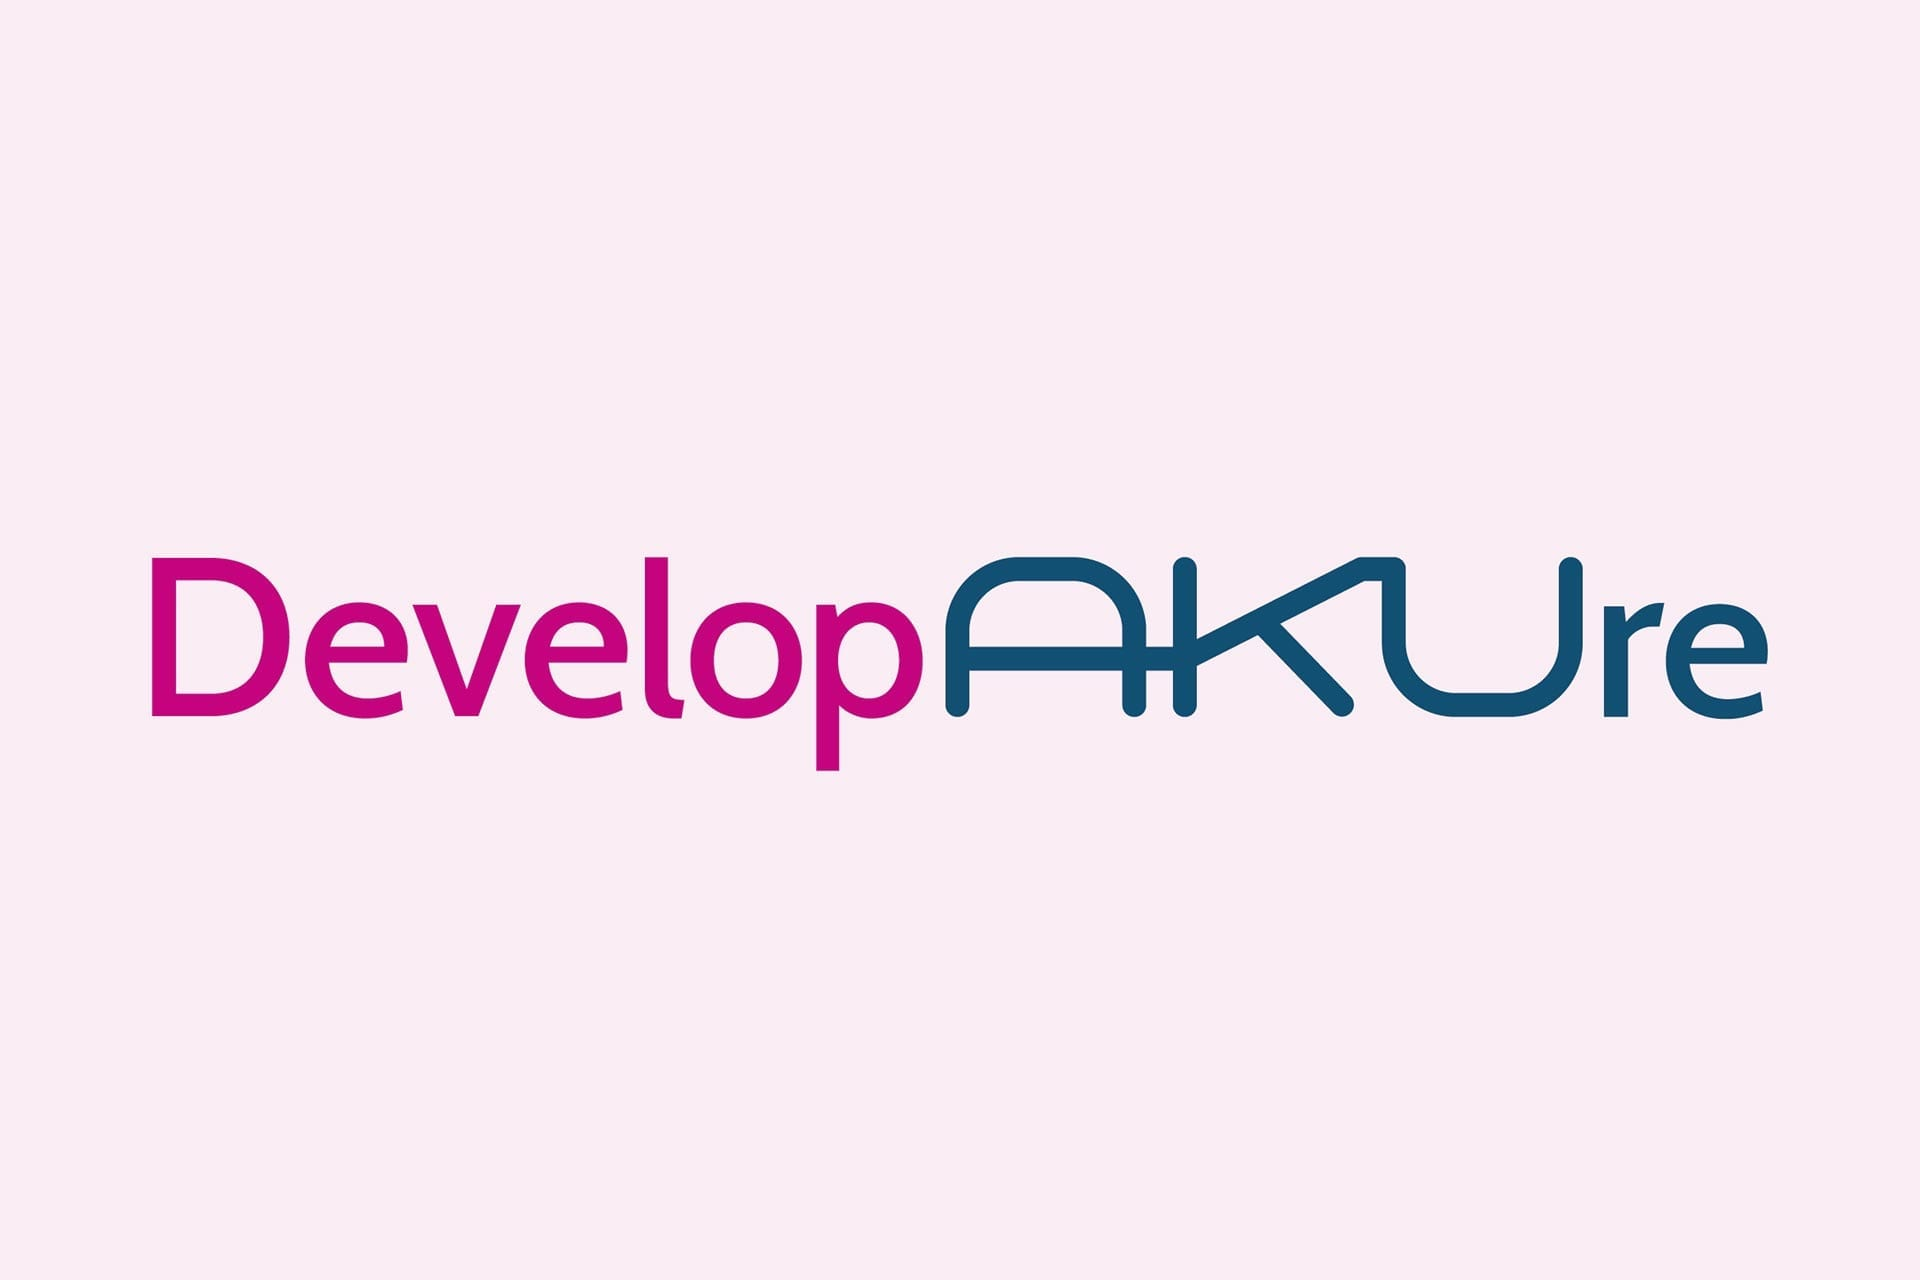 DevelopAKUre-Logo-CMYK-HR-01-(002)